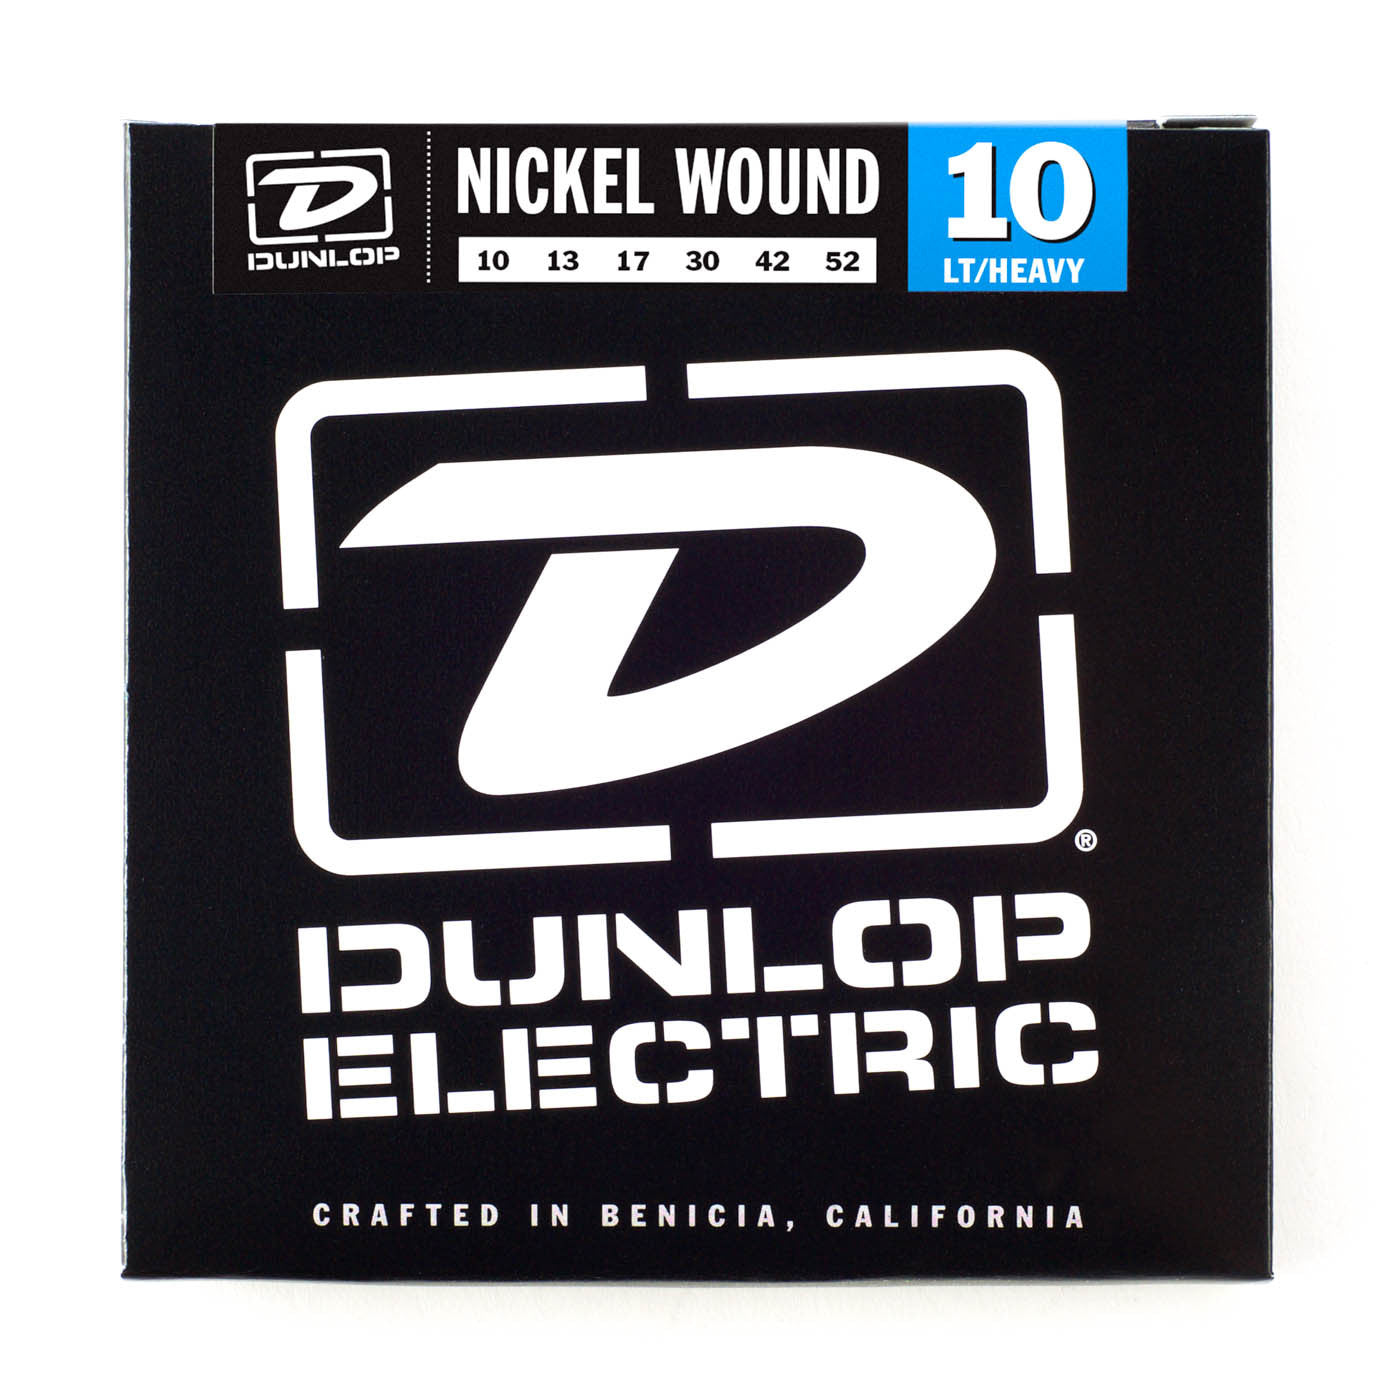 Dunlop Electric Nickel Wound 10-52